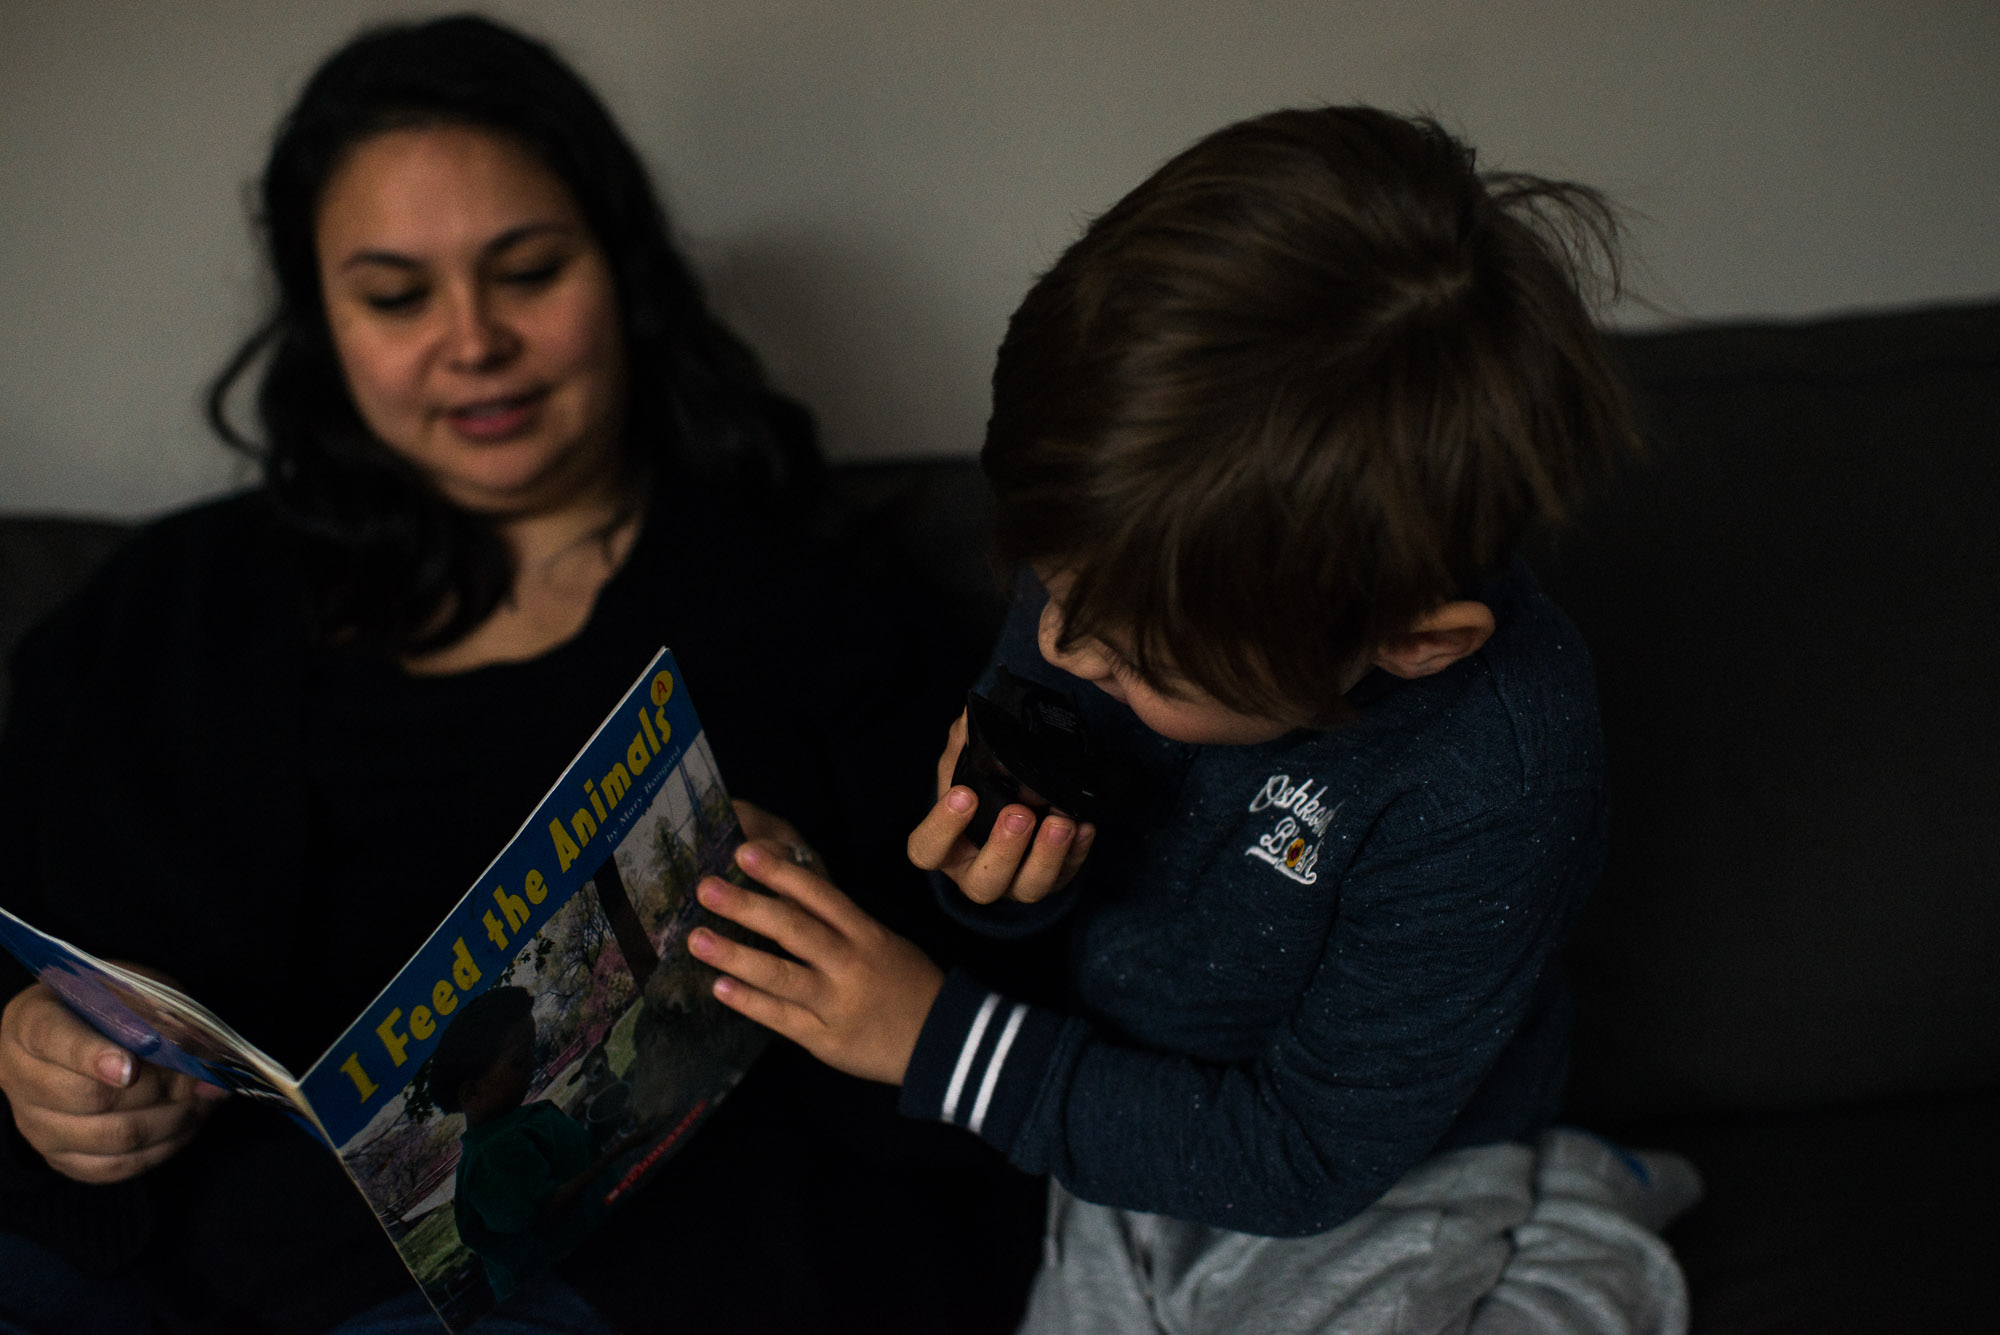 boy checks front page of book mom reads to him